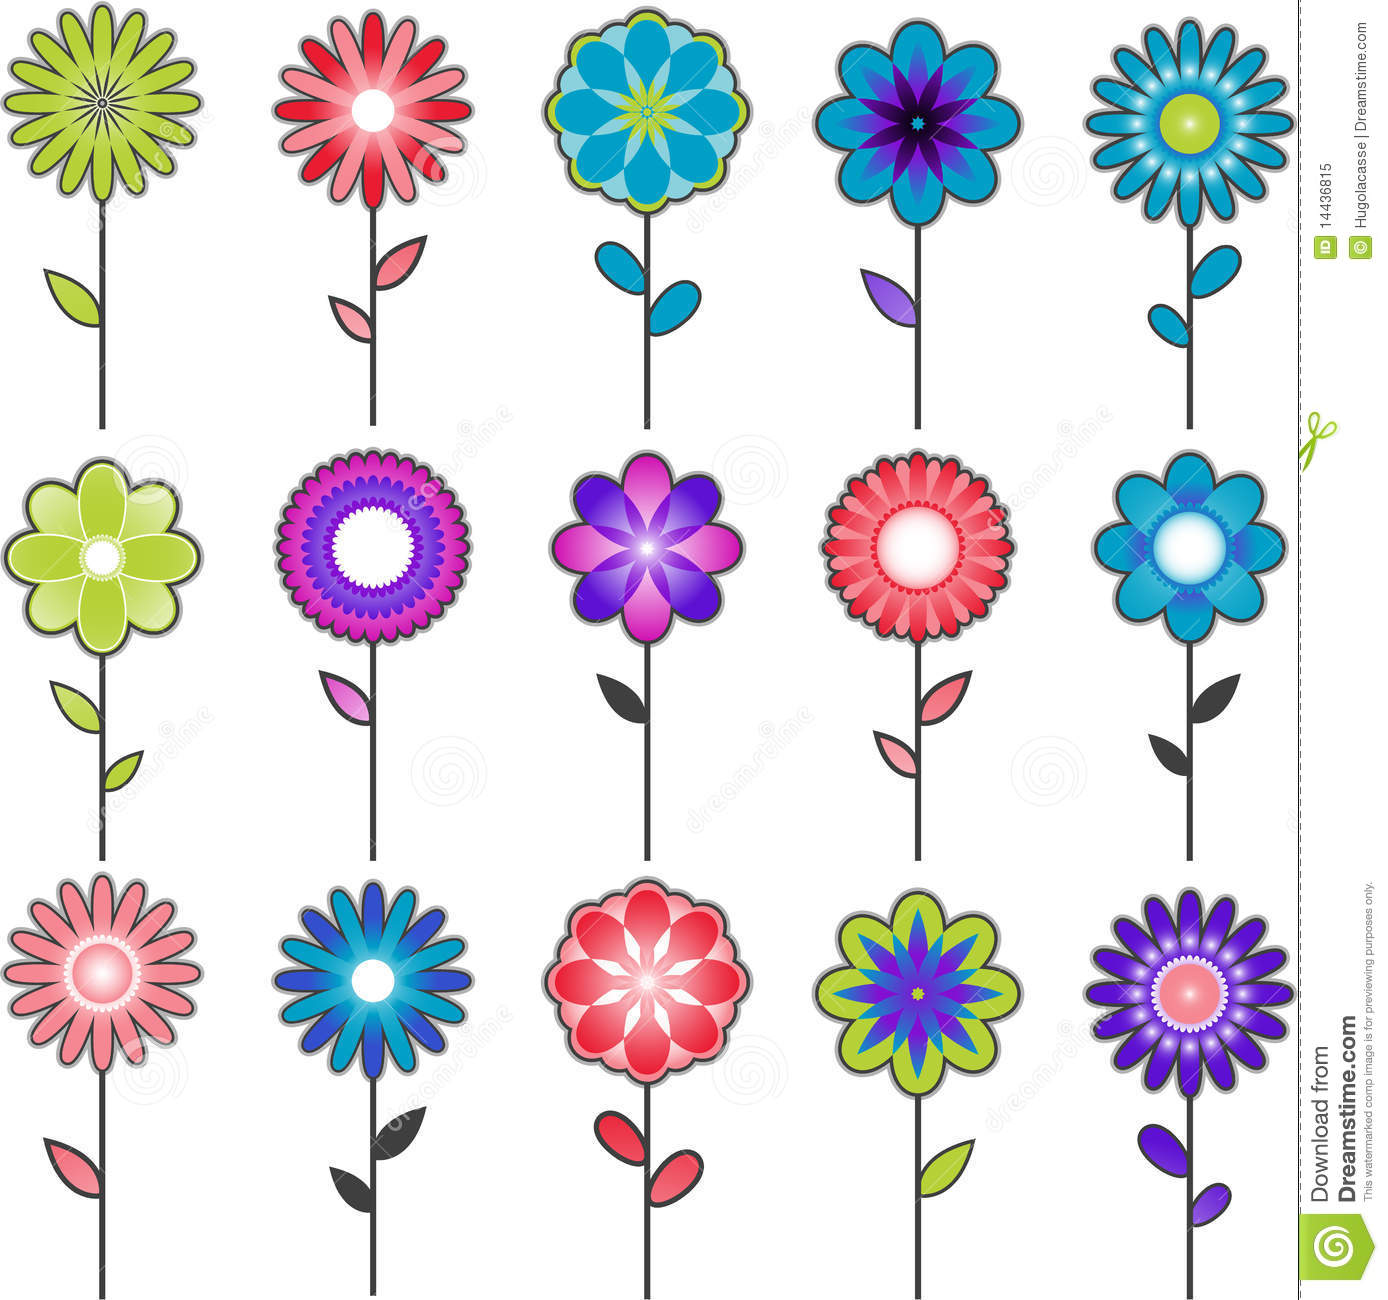 Vector Flower Designs Royalty Free Stock Photo Image